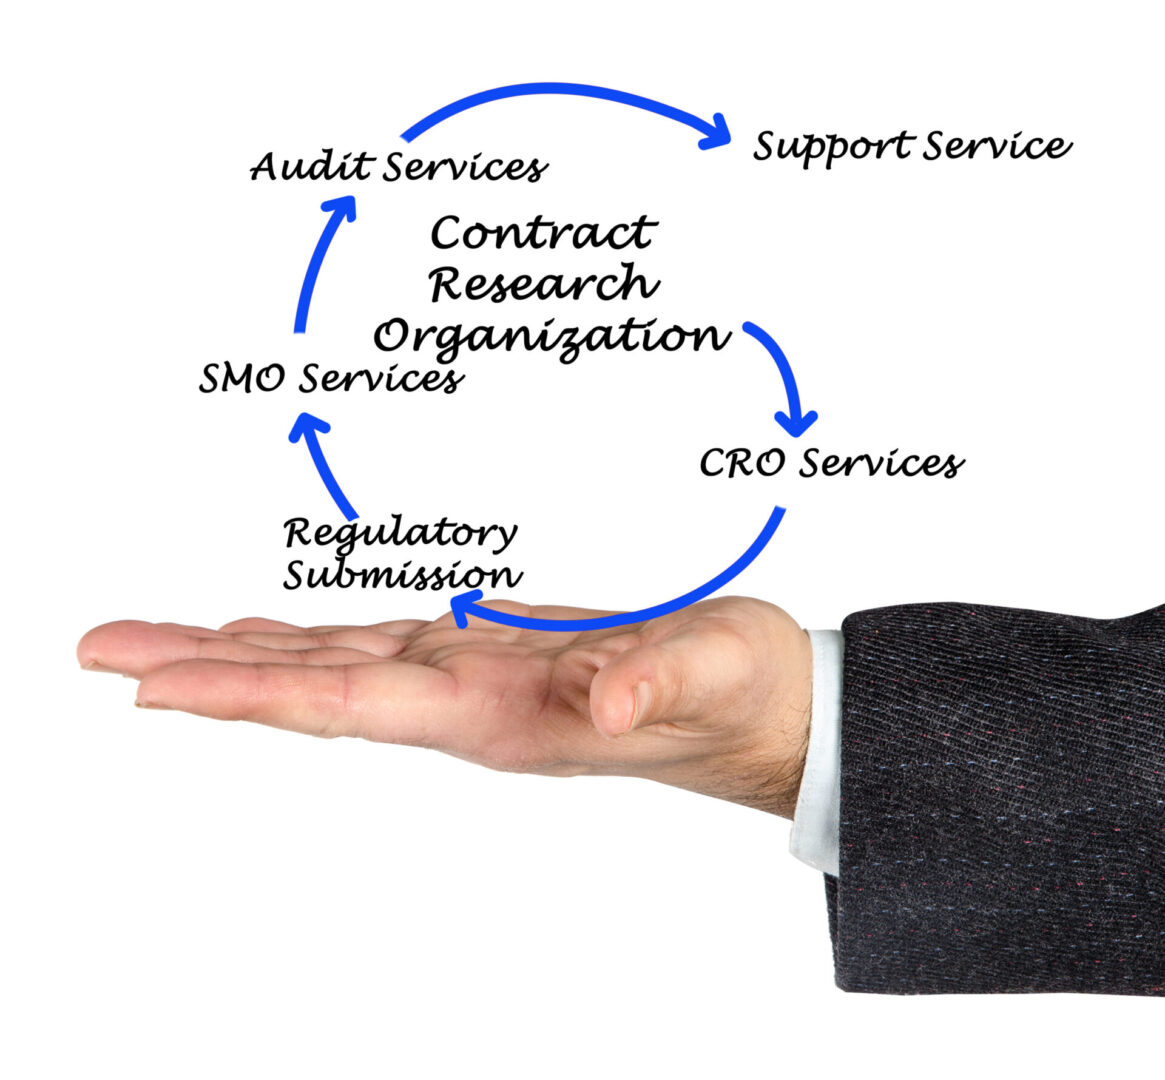 Contract research organization